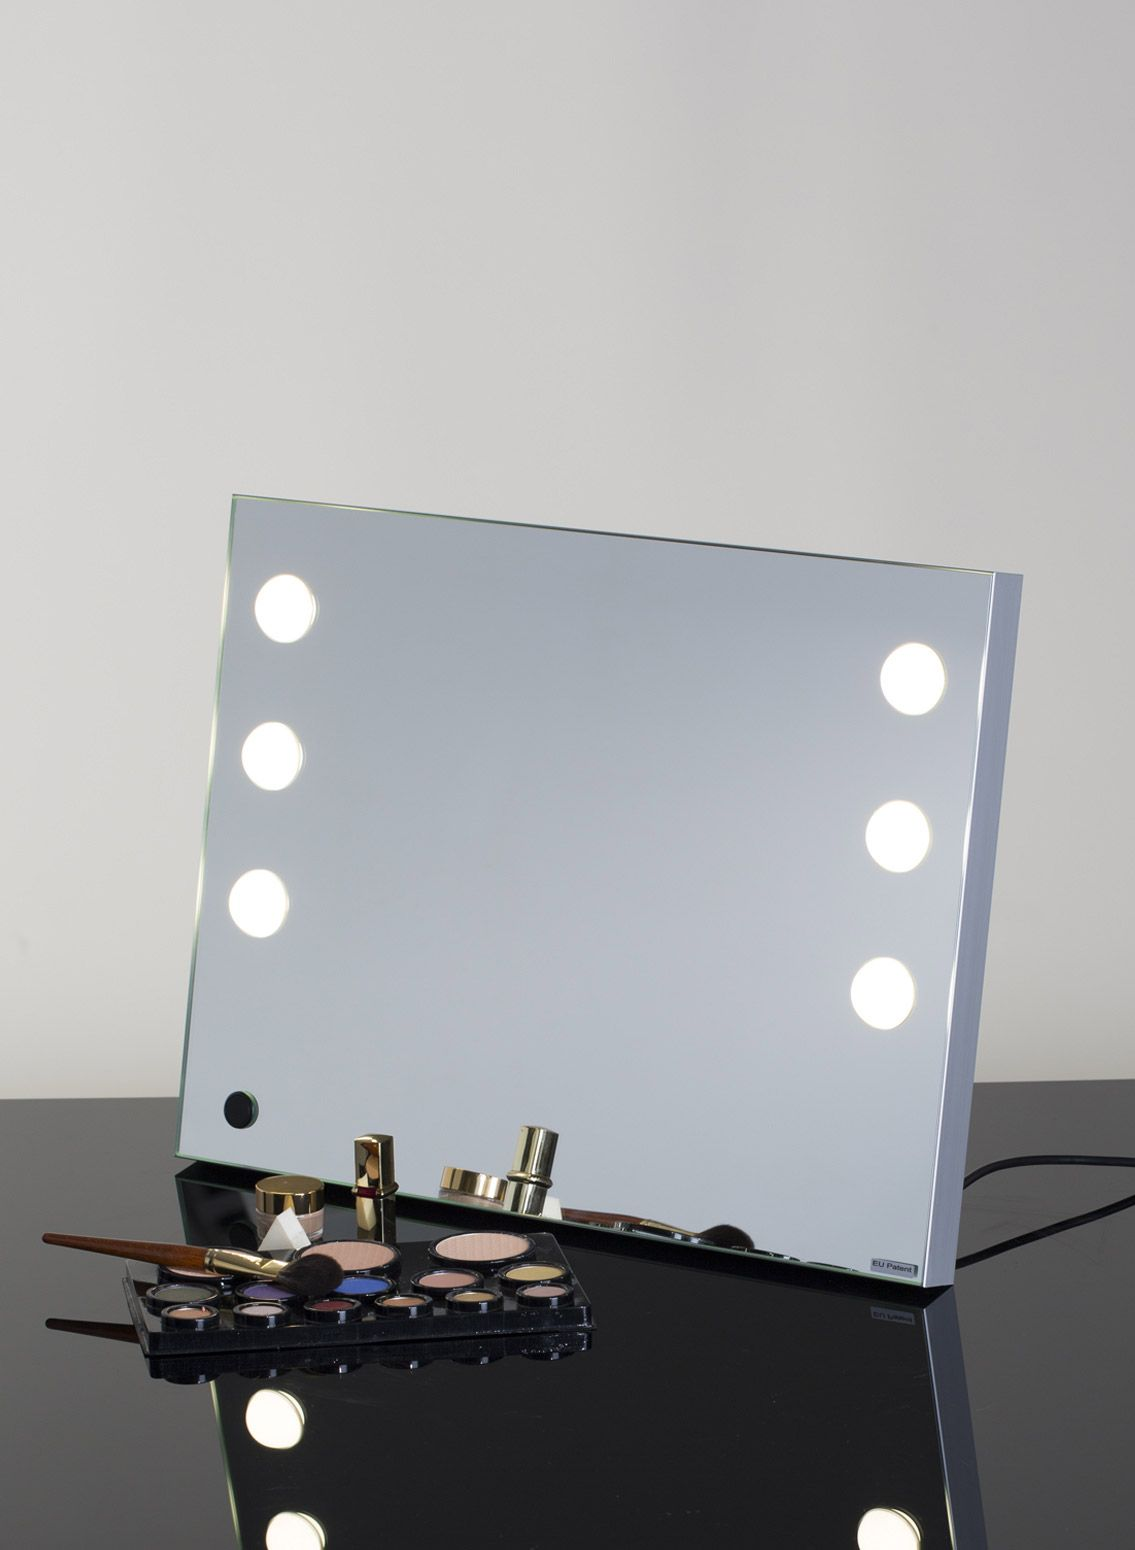 MDE TABLE PORTABLE VANITY MIRROR. Makeup Vanity Mirrors. Cantoni For Makeup  Artist,